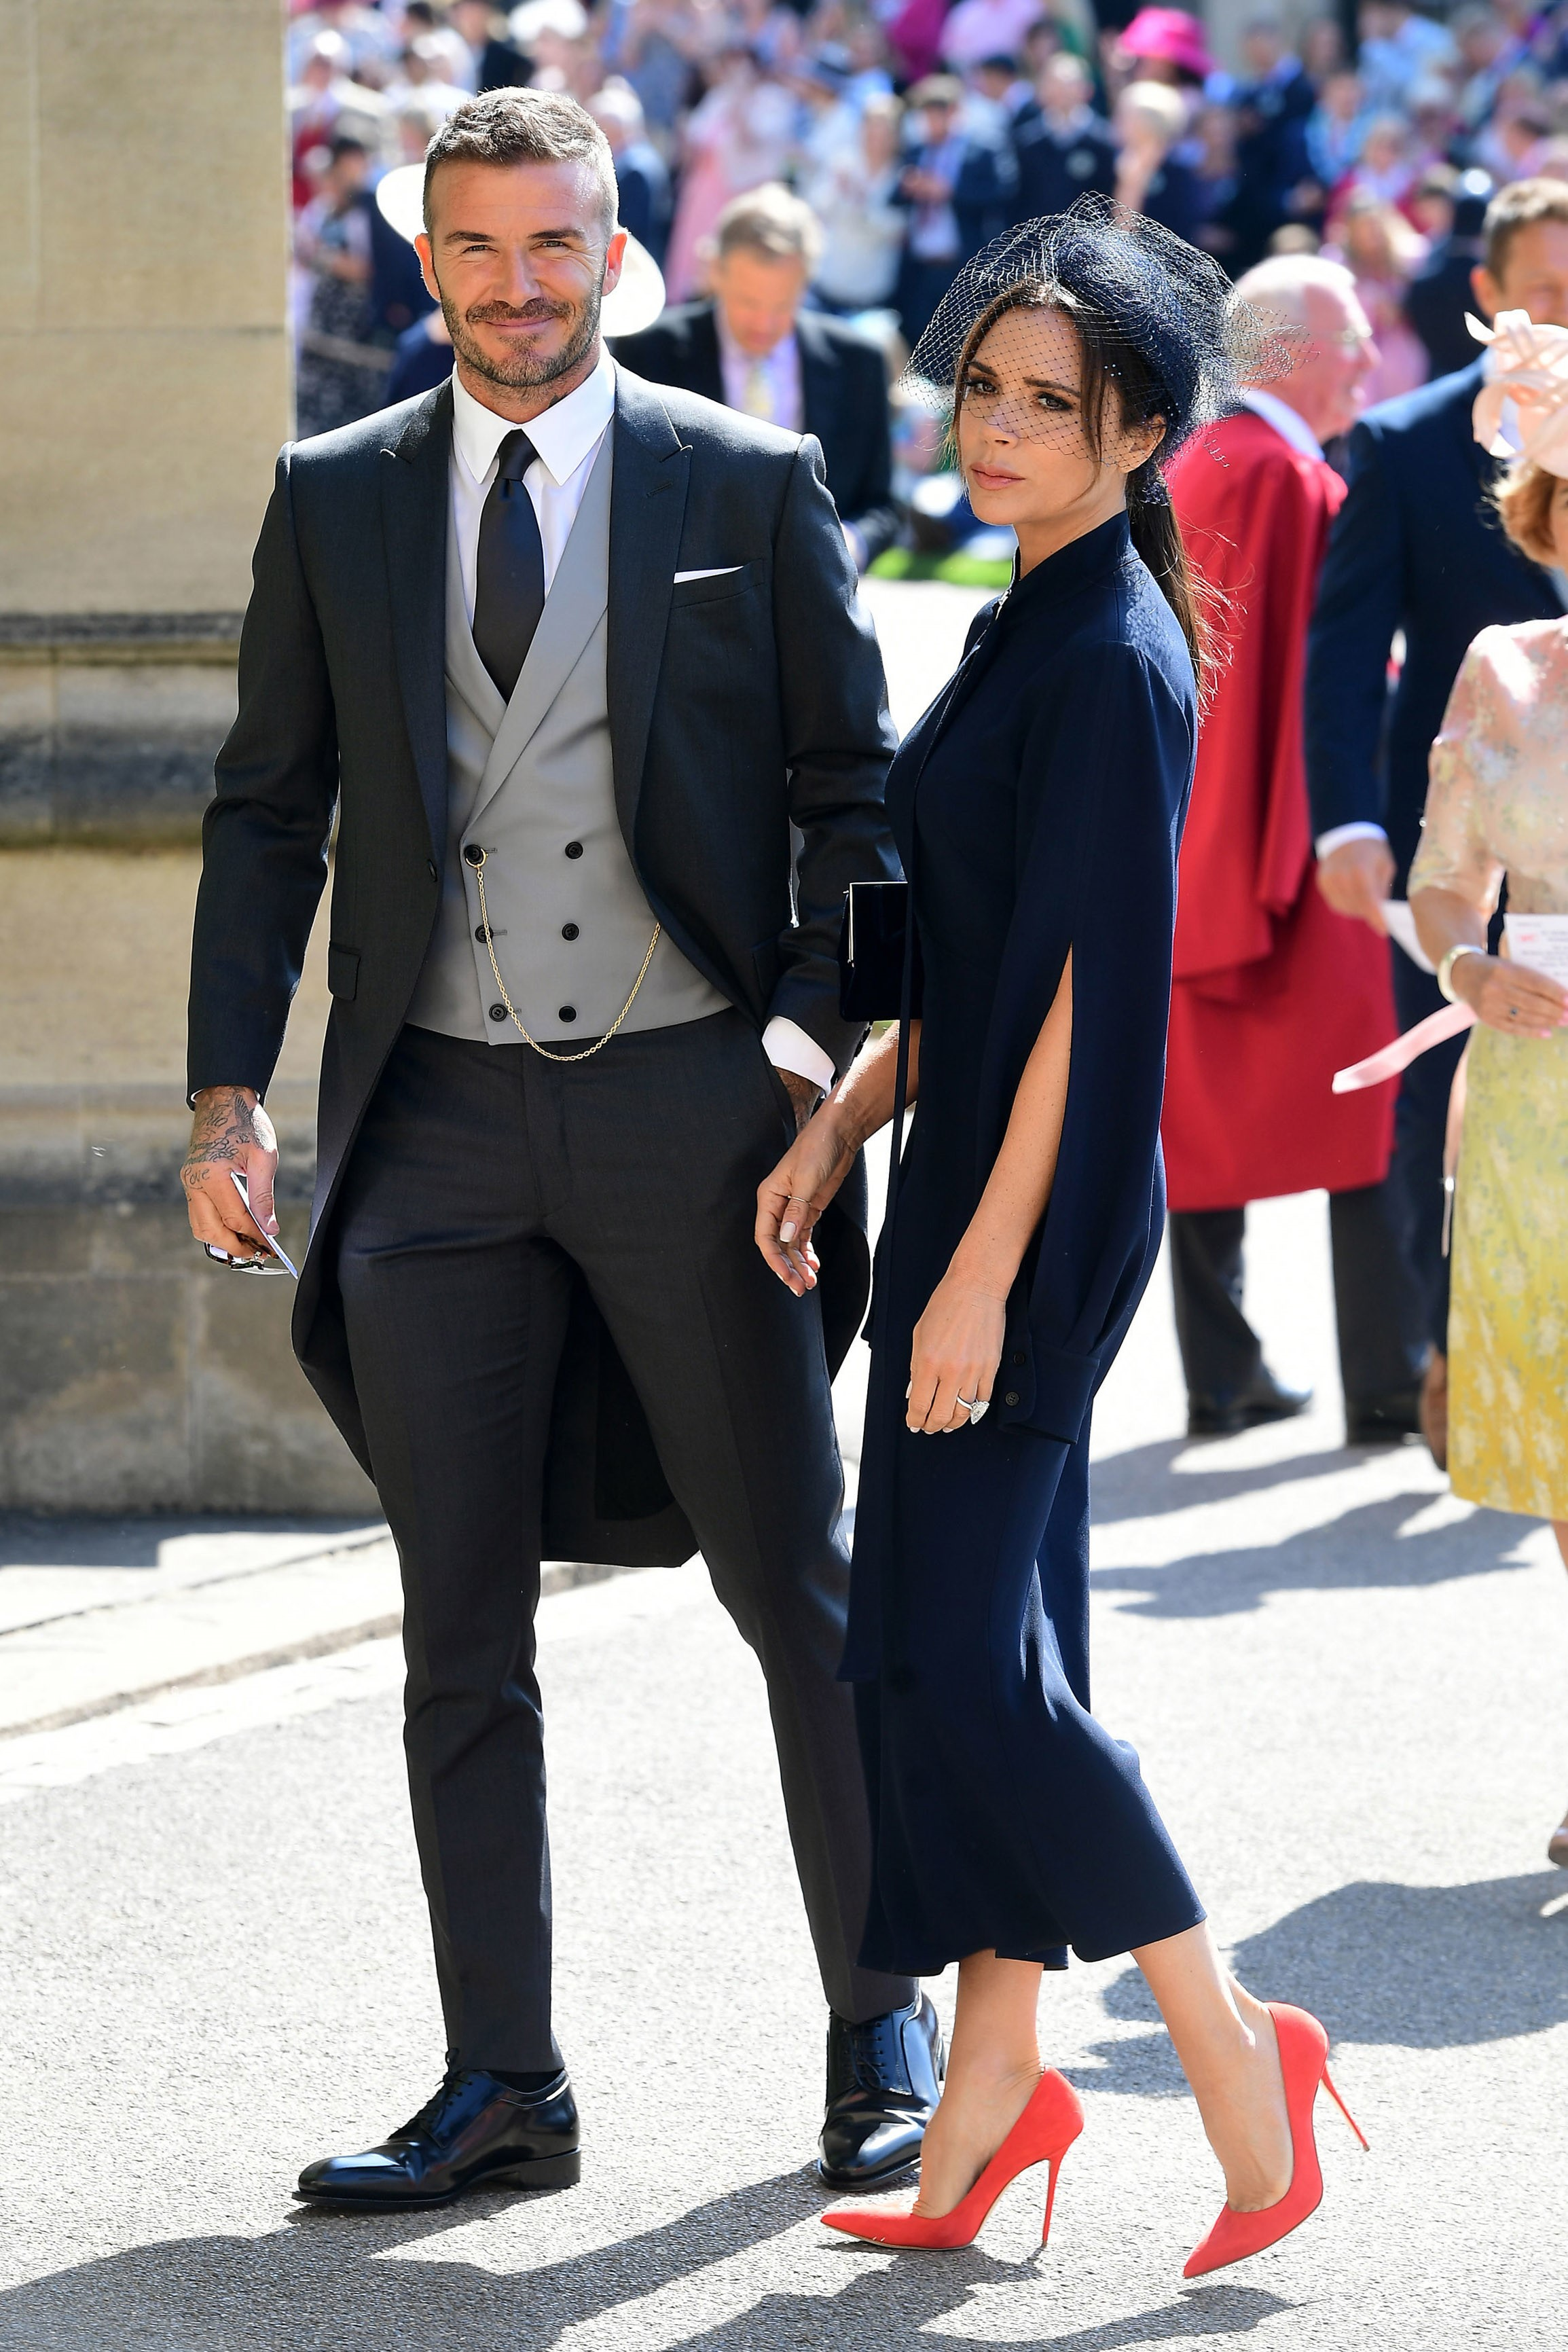 David Beckham_Royal Wedding 2